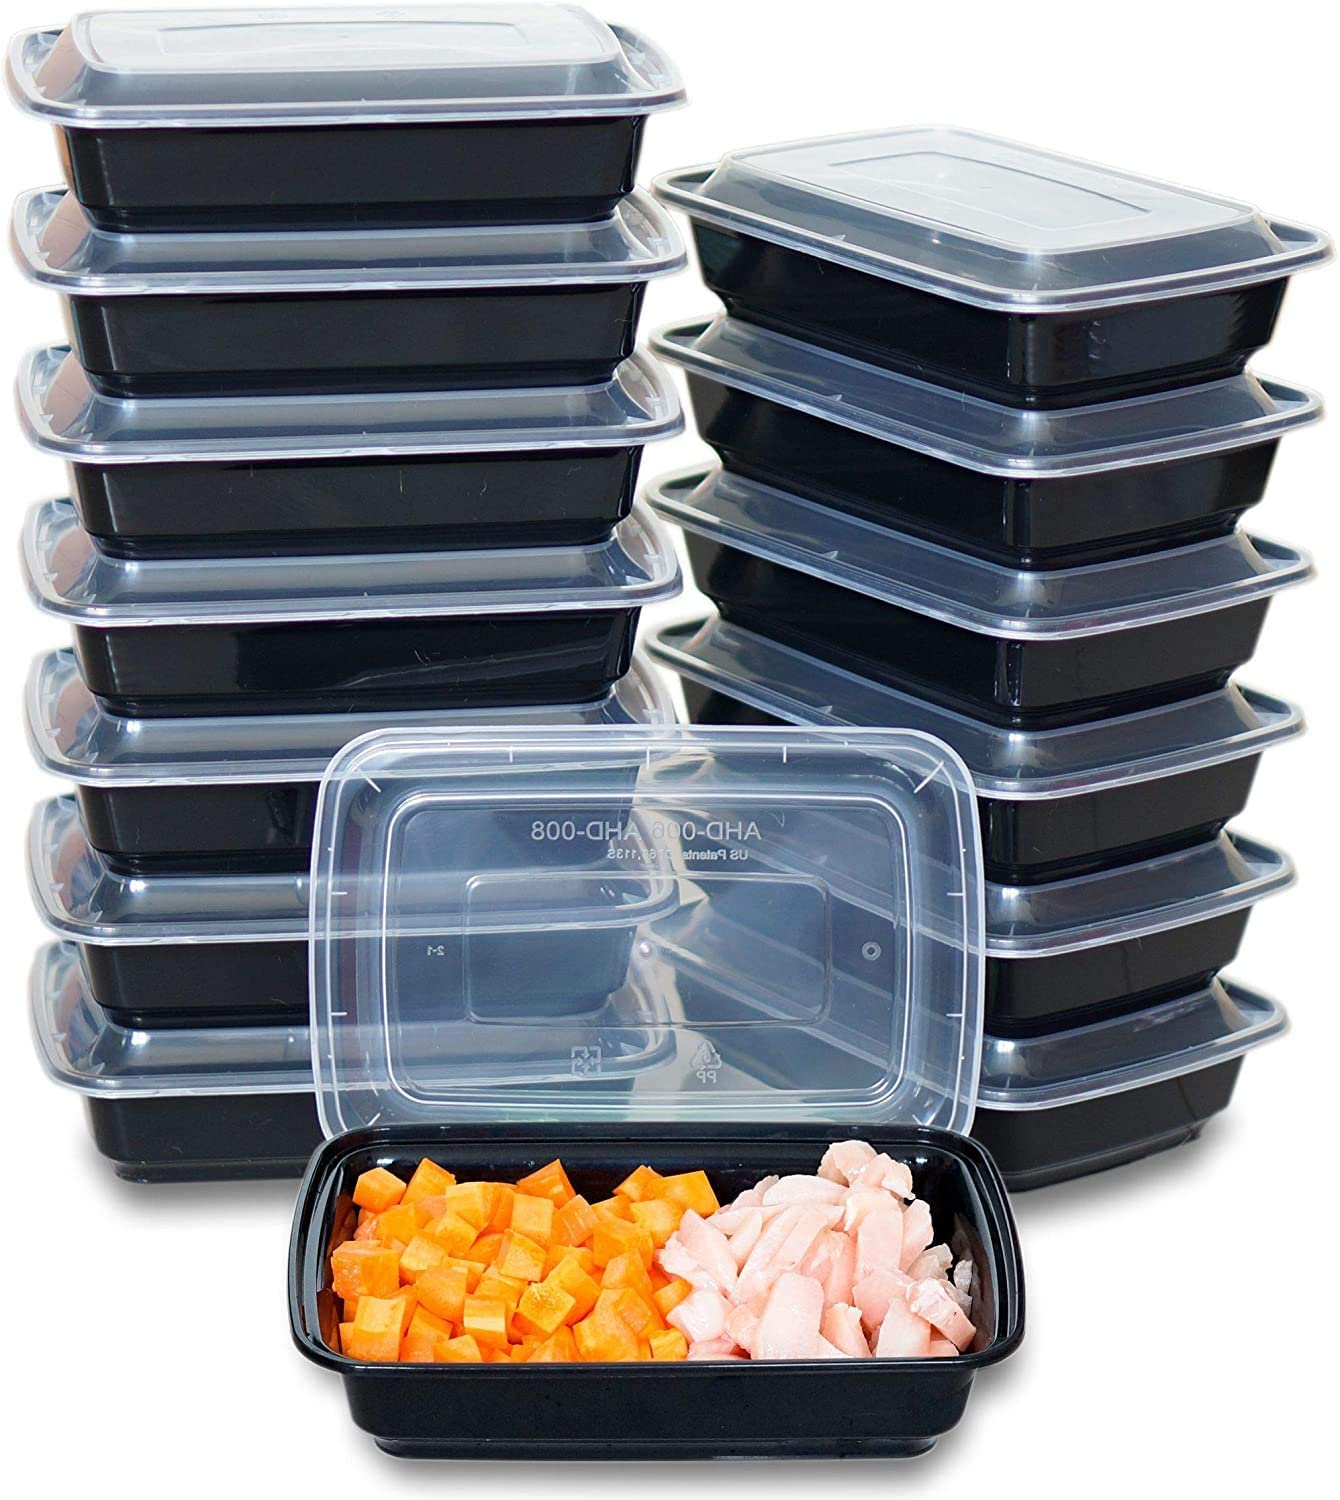 150 Pack Meal Prep Container 28oz with Lids, Reusable Food Delivery Storage Containers, Bento Lunch Box | BPA Free | Stackable | Microwave/Dishwasher/Freezer Safe 71jOC-tA83L